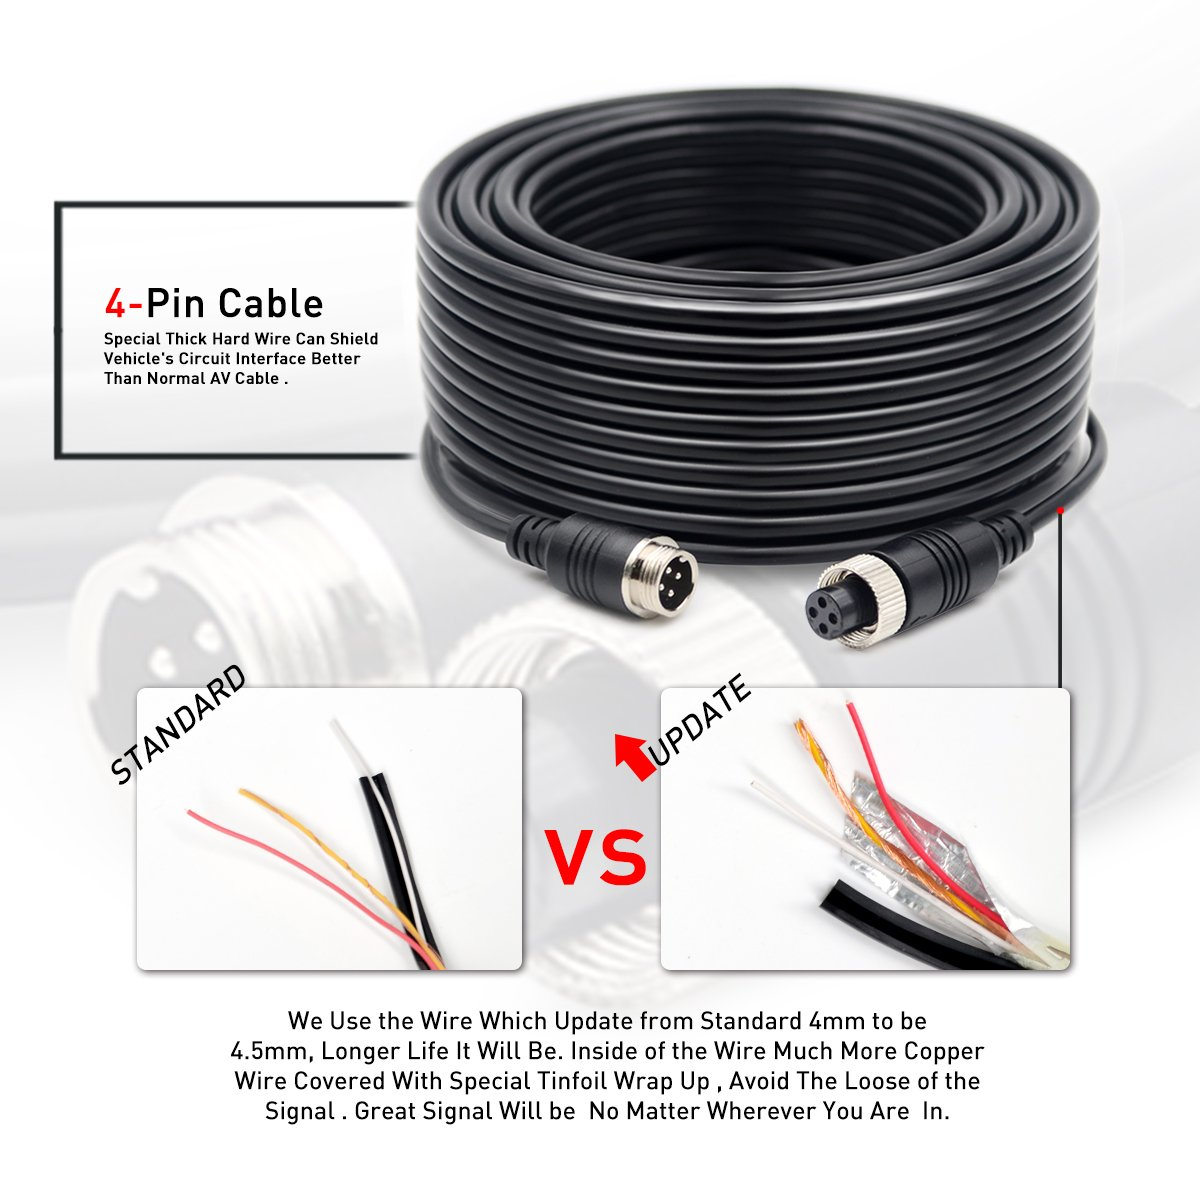 Backup Camera Cable Wire 34 Foot Extension Video Wiring Pickup Box Trailer For Heavy Vehicle Like Semi Truck Farm Tractor Rv 5th Wheel Erapta